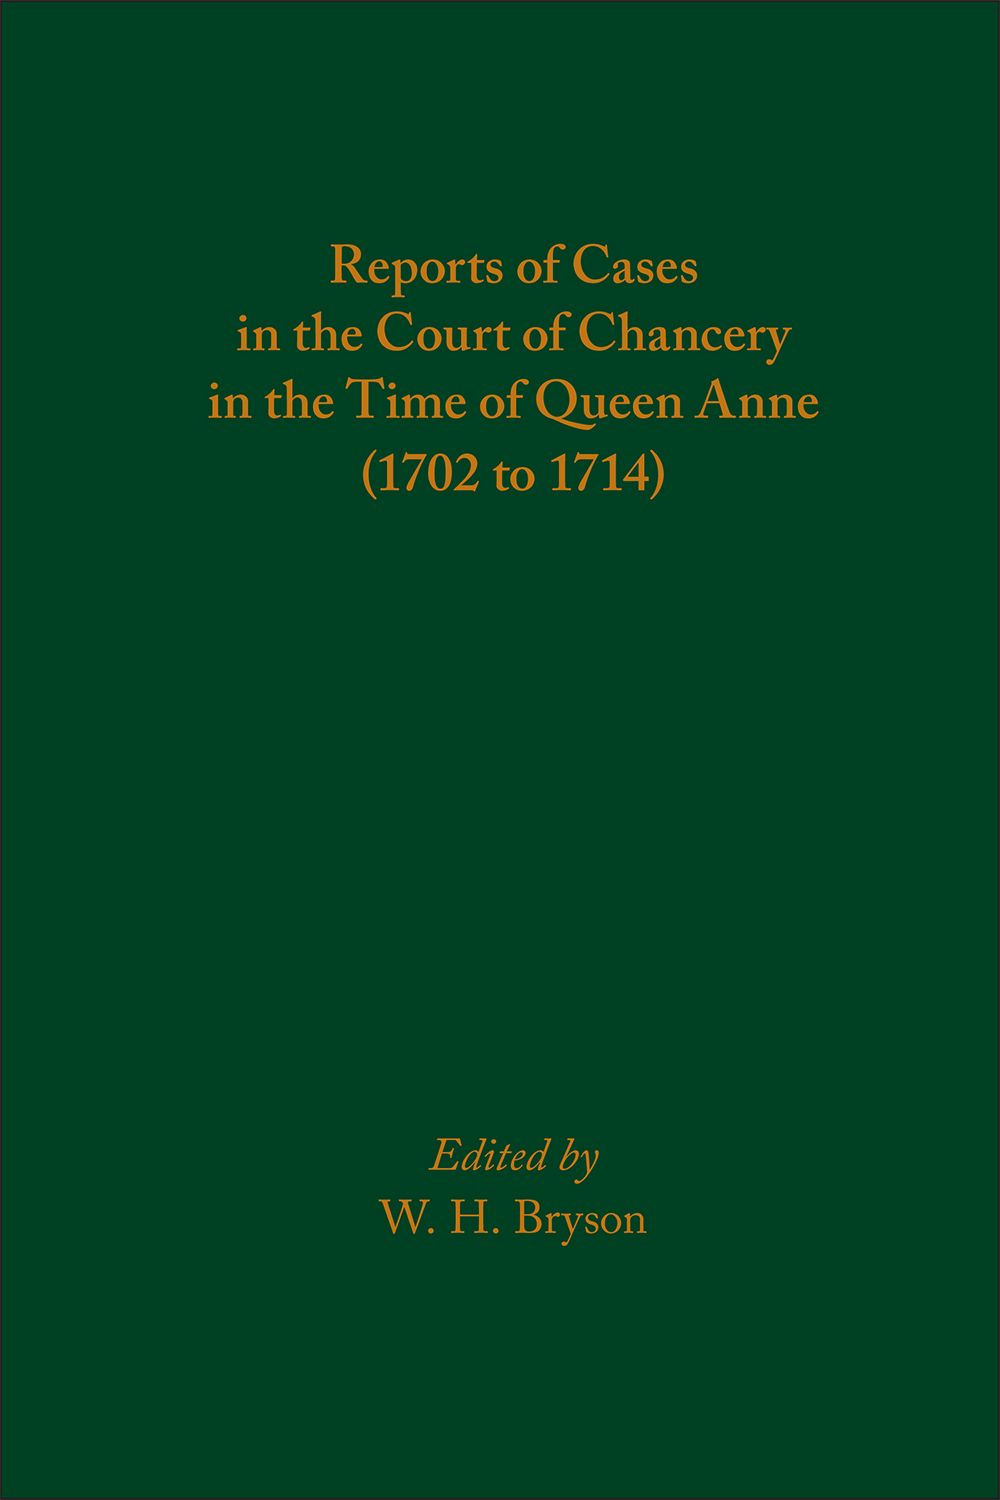 Reports of Cases in the Court of Chancery in the Time of Queen